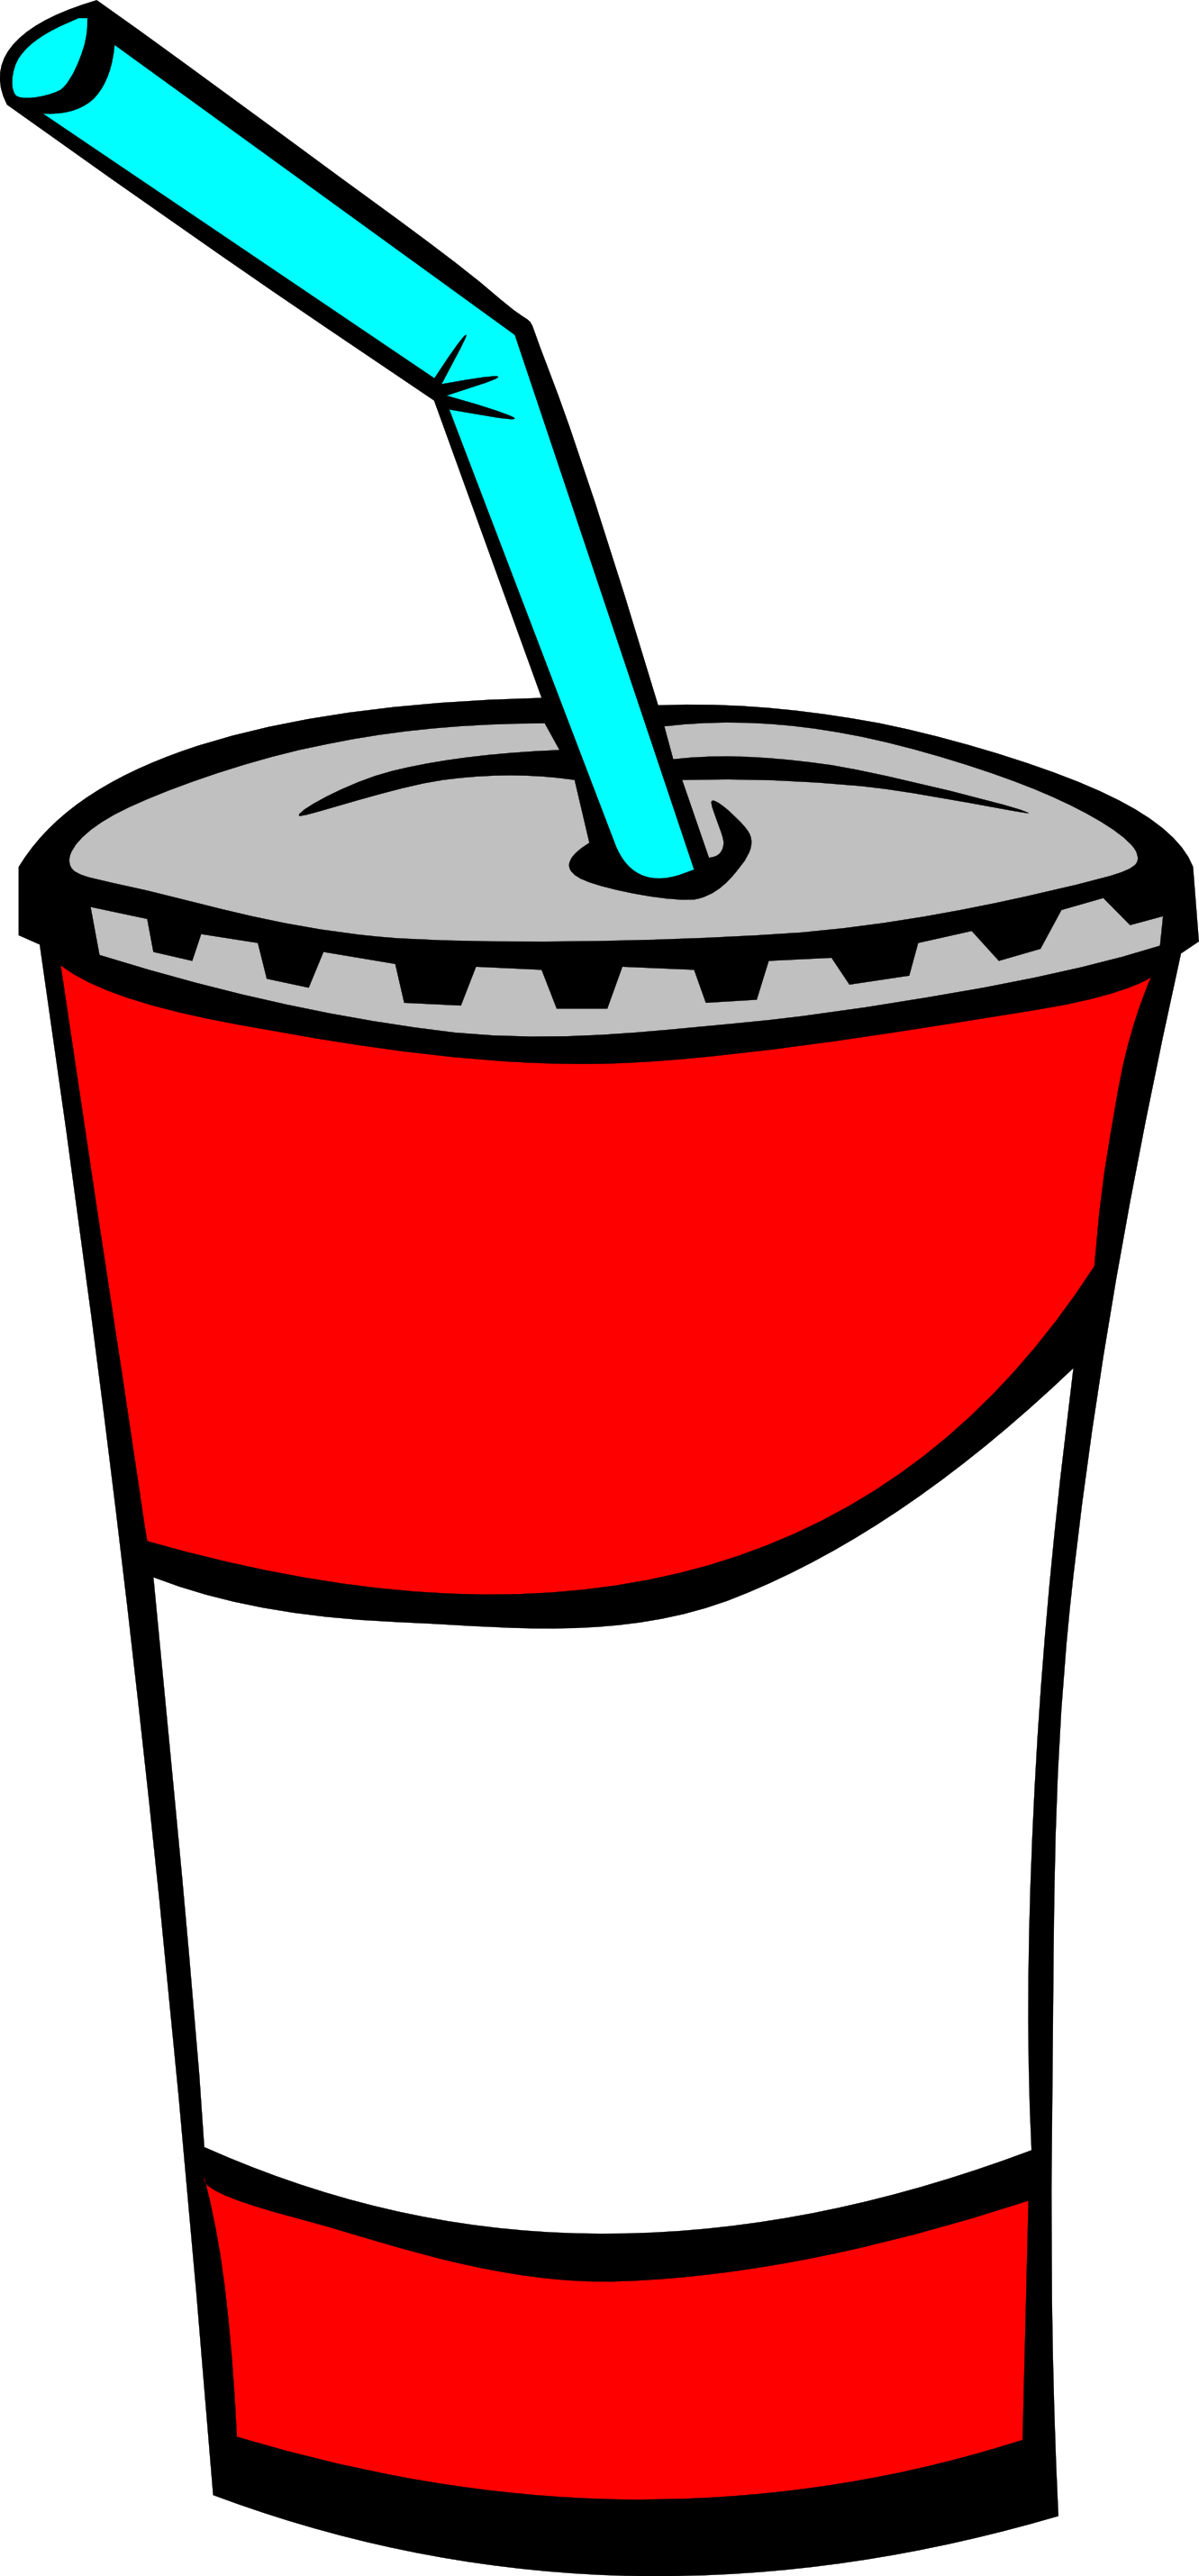 Drinks clipart. Drink clip art pictures